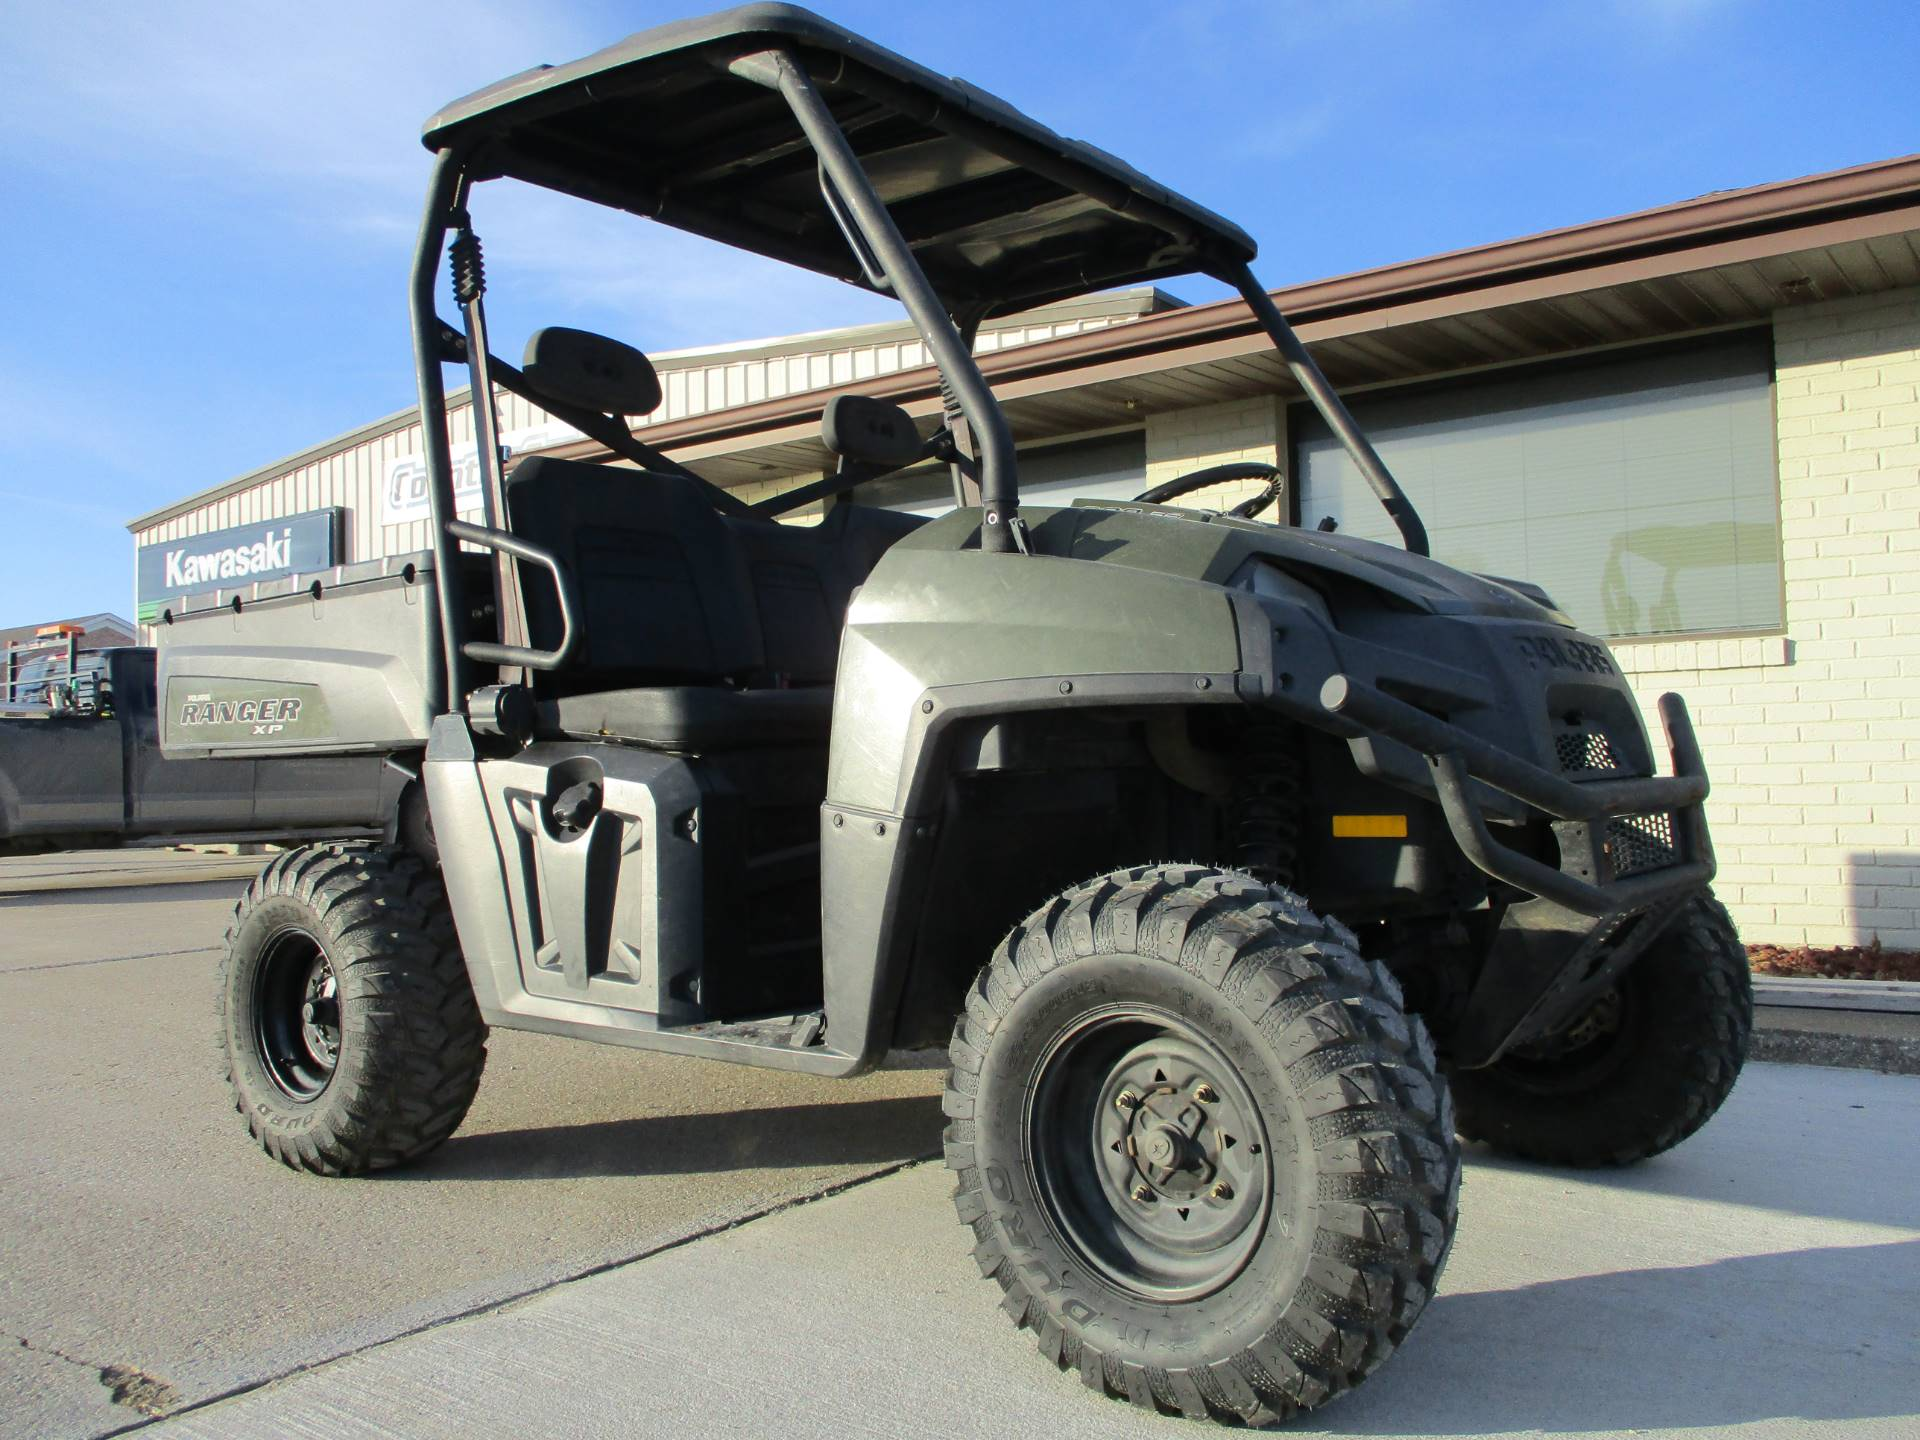 2011 Polaris Ranger XP® 800 in Winterset, Iowa - Photo 3